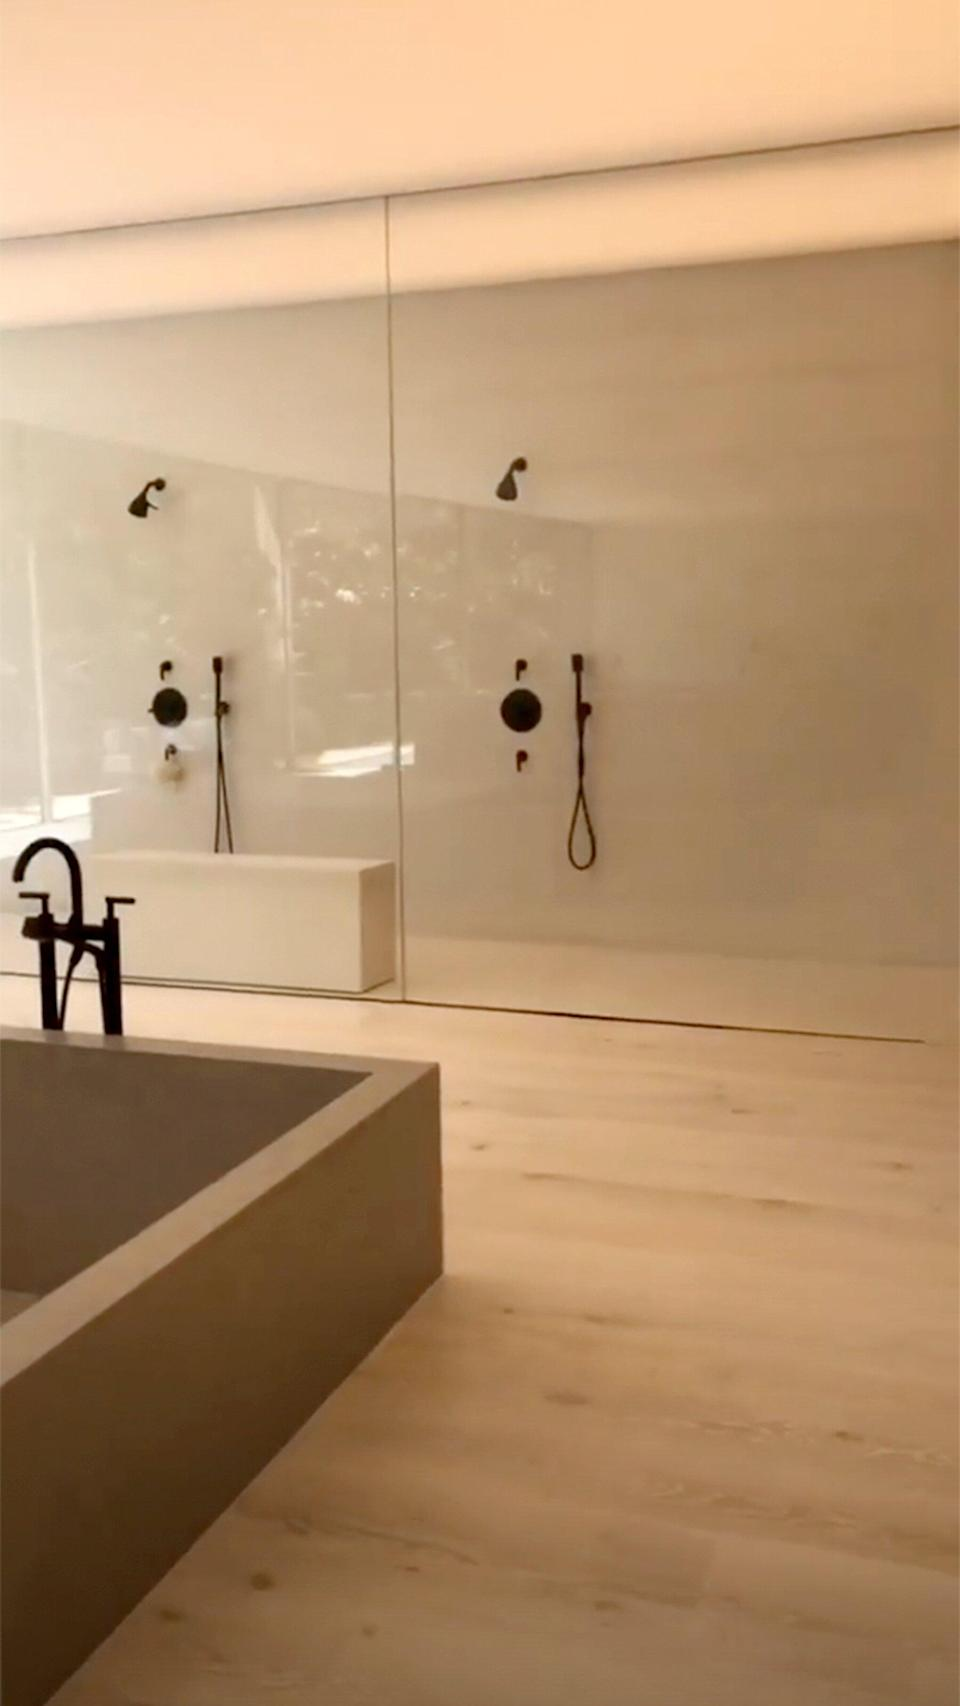 """The <a href=""""https://people.com/home/kim-kardashian-bathroom-tour-sink-tutorial/"""" rel=""""nofollow noopener"""" target=""""_blank"""" data-ylk=""""slk:mysterious sinks"""" class=""""link rapid-noclick-resp"""">mysterious sinks</a> aren't the only bathroom fixture <a href=""""https://people.com/home/kim-kardashian-bathroom-sink-price-breakdown/"""" rel=""""nofollow noopener"""" target=""""_blank"""" data-ylk=""""slk:that's minimalistic, puzzling and likely extremely expensive"""" class=""""link rapid-noclick-resp"""">that's minimalistic, puzzling and likely extremely expensive</a>."""